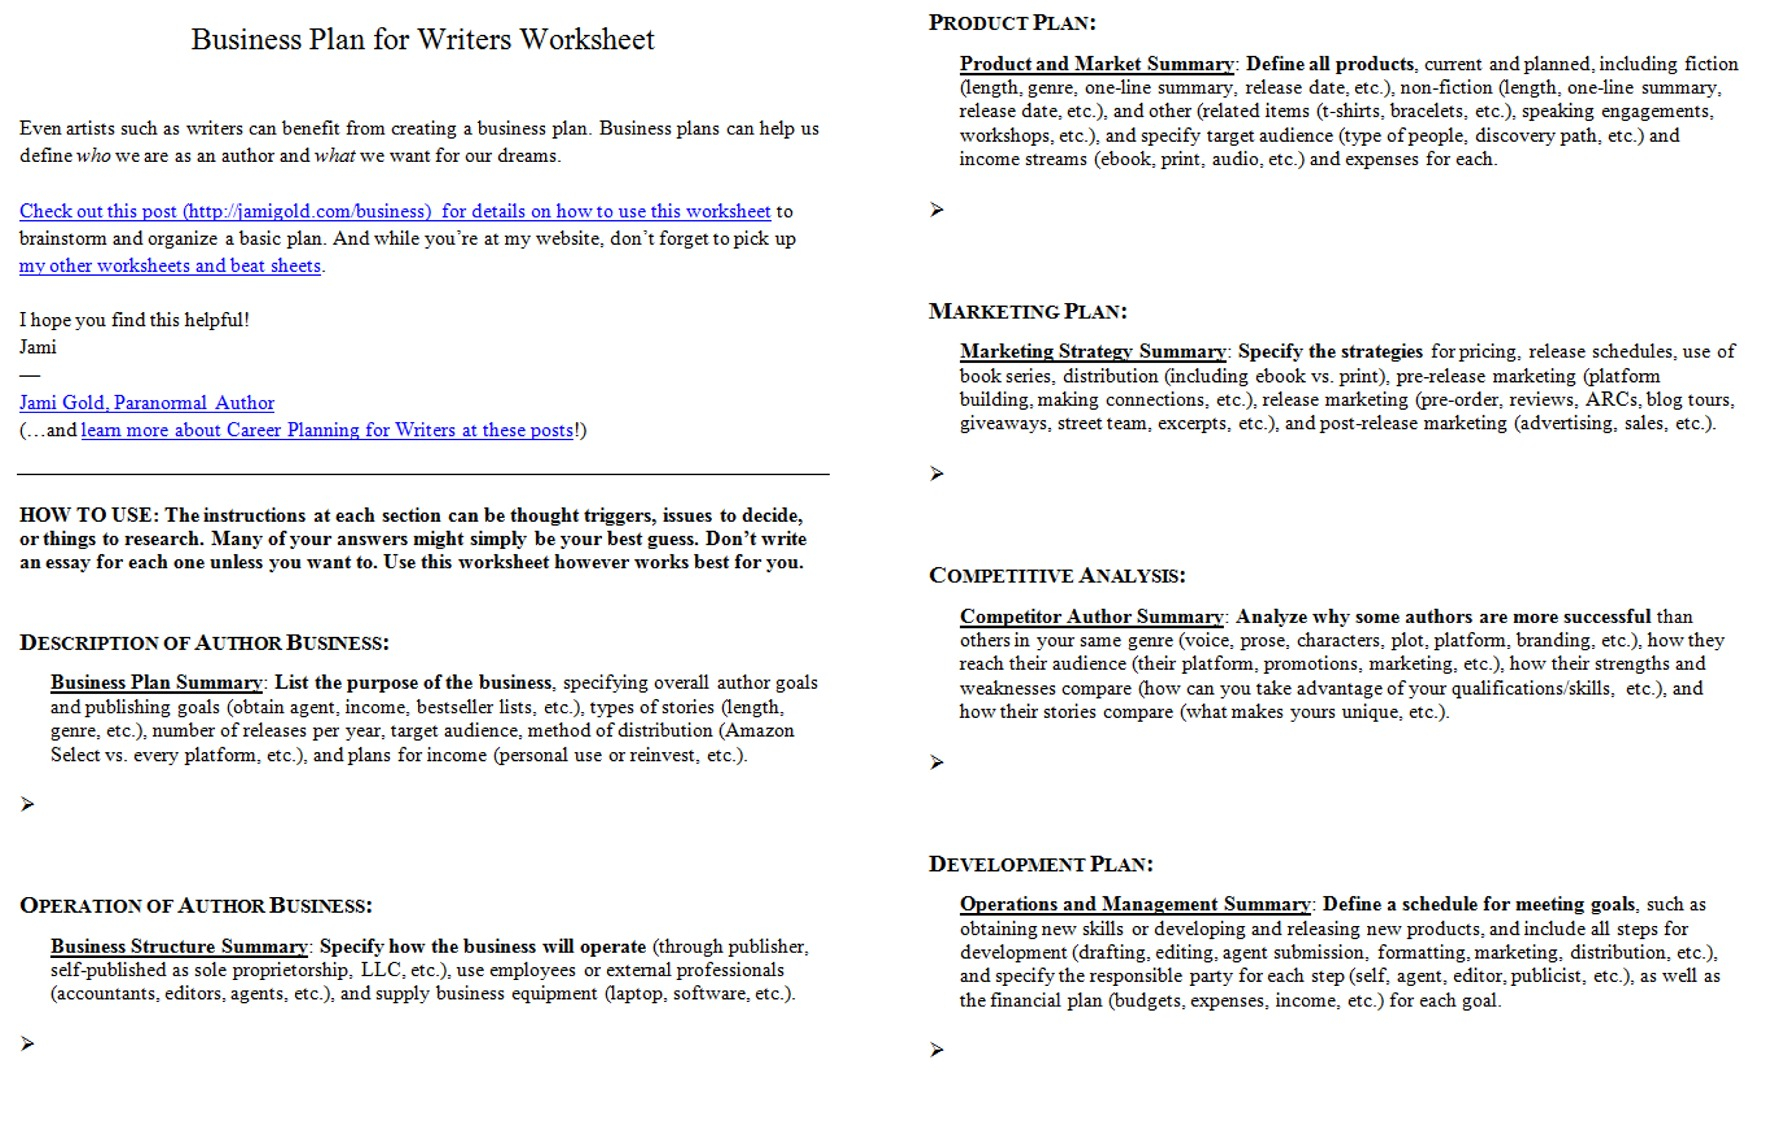 Aldiablosus  Pleasing Worksheets For Writers  Jami Gold Paranormal Author With Hot Screen Shot Of Both Pages Of The Business Plan For Writers Worksheet With Cute The Pythagorean Theorem Worksheet Answers Also Present And Past Participle Worksheets In Addition Semicolon Worksheet Ks And Titration Worksheet With Answers As Well As Letter P Worksheets For Preschool Additionally Population Pyramid Worksheet From Jamigoldcom With Aldiablosus  Hot Worksheets For Writers  Jami Gold Paranormal Author With Cute Screen Shot Of Both Pages Of The Business Plan For Writers Worksheet And Pleasing The Pythagorean Theorem Worksheet Answers Also Present And Past Participle Worksheets In Addition Semicolon Worksheet Ks From Jamigoldcom